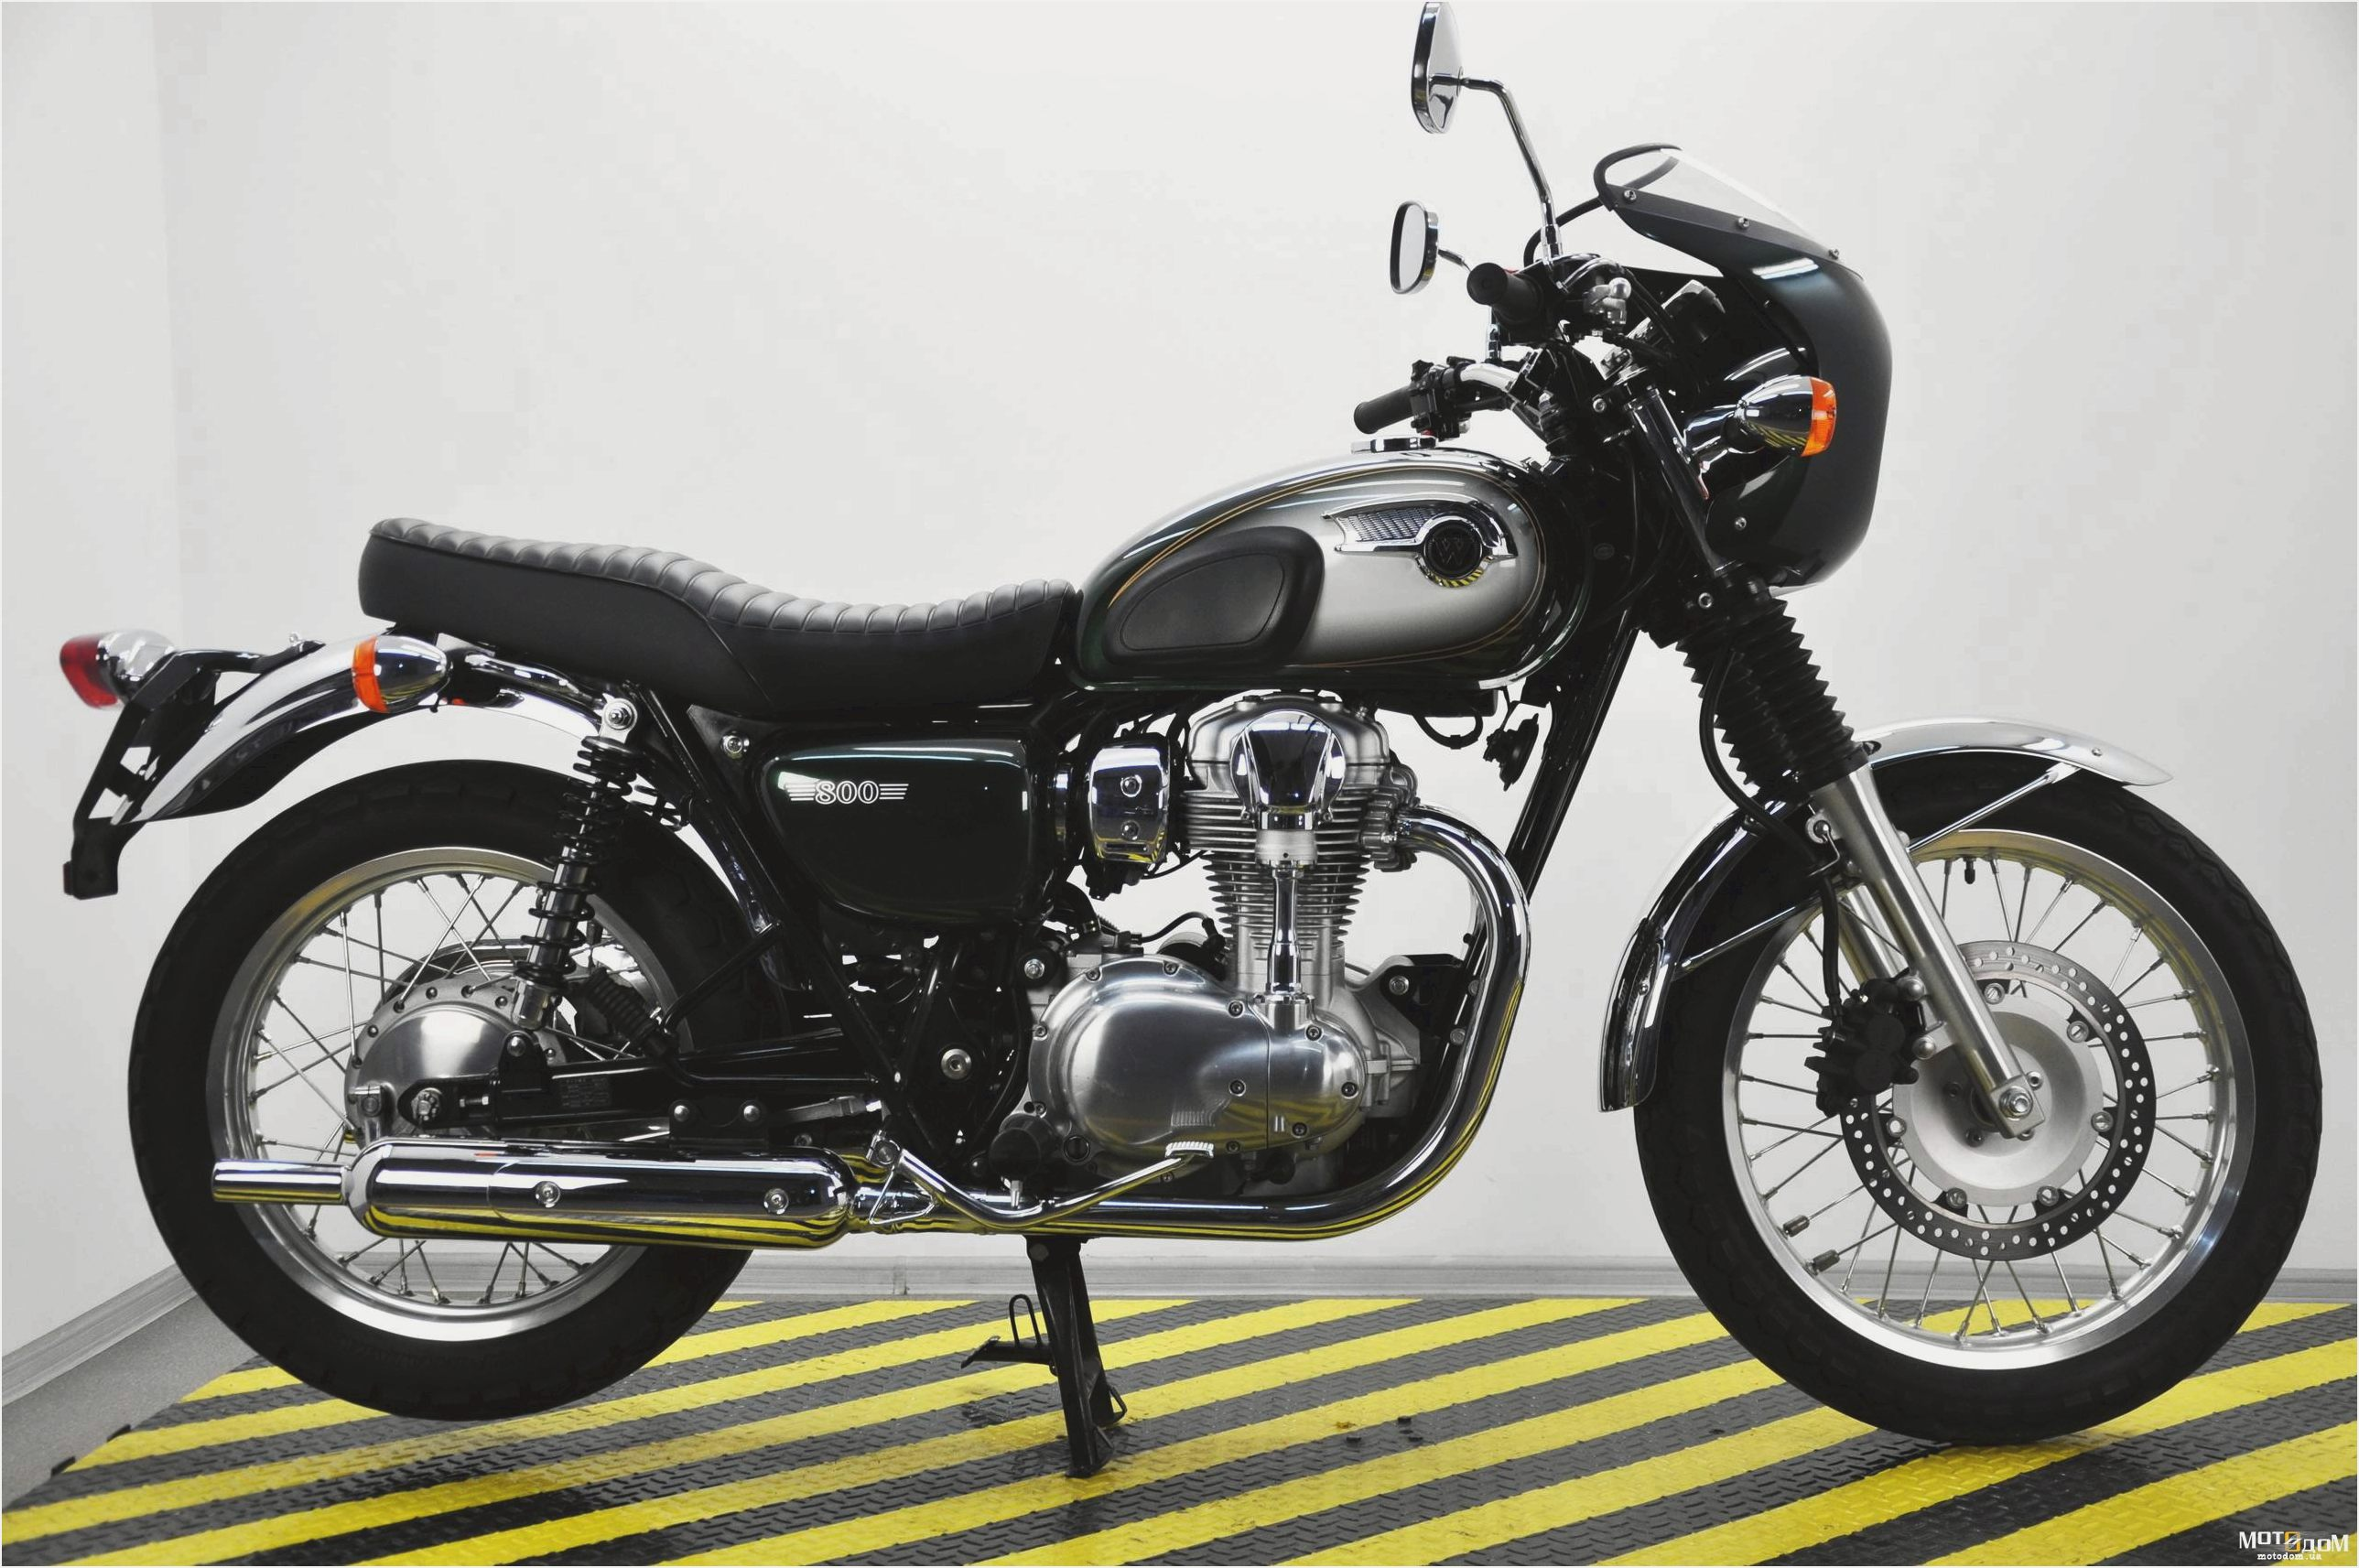 Kawasaki W800 Cafe Style 2011 images #86139